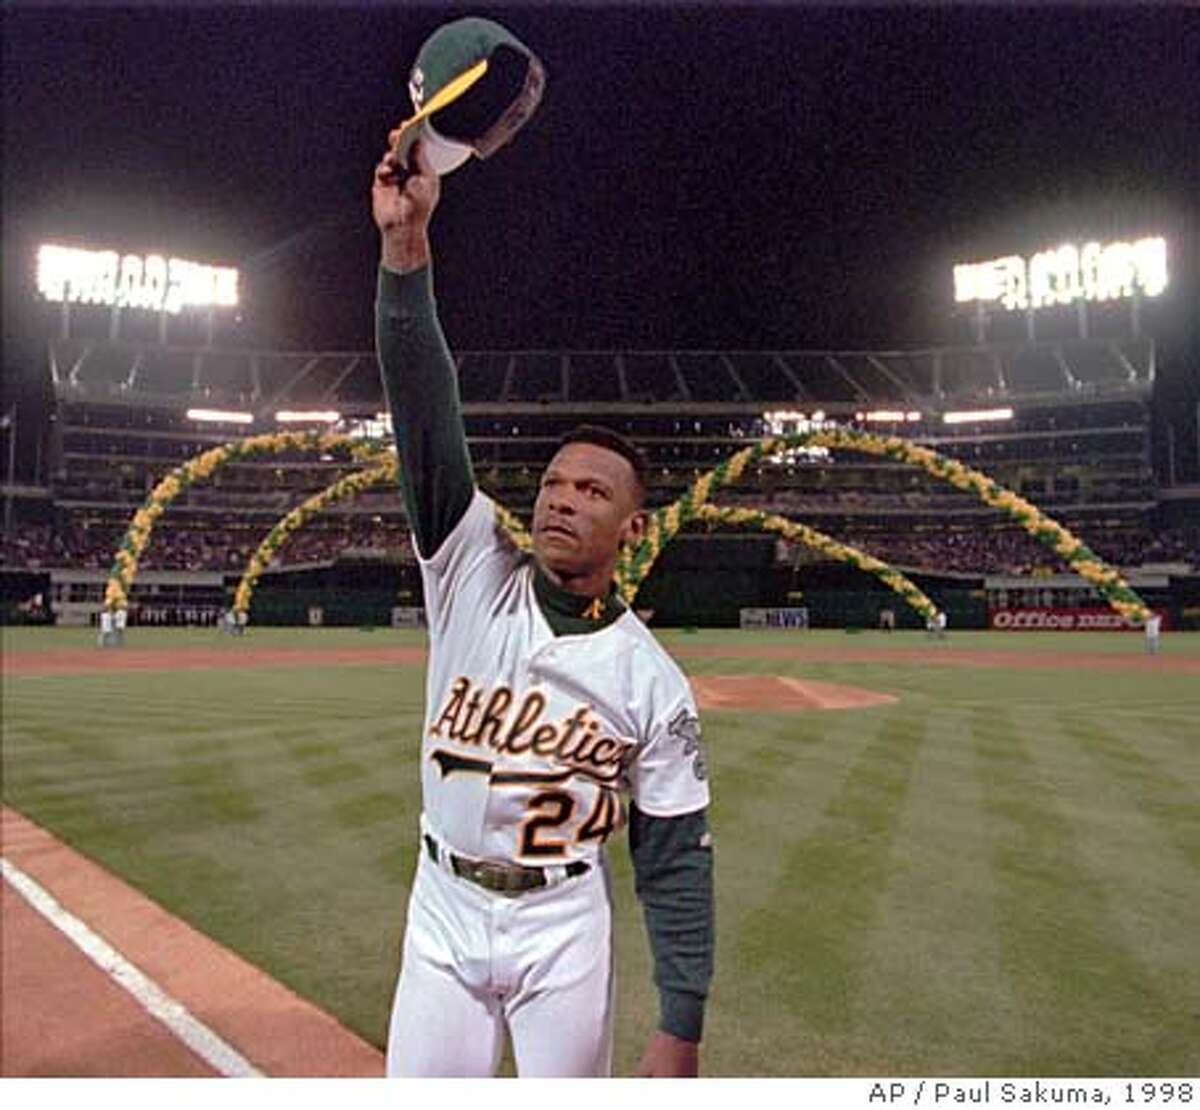 Oakland Athletics left fielder Rickey Henderson waves to the crowd as he is introduced before the game against the Boston Red Sox, Wednesday night, April 1, 1998, at the Oakland (Calif.) Coliseum. (AP Photo/Paul Sakuma)